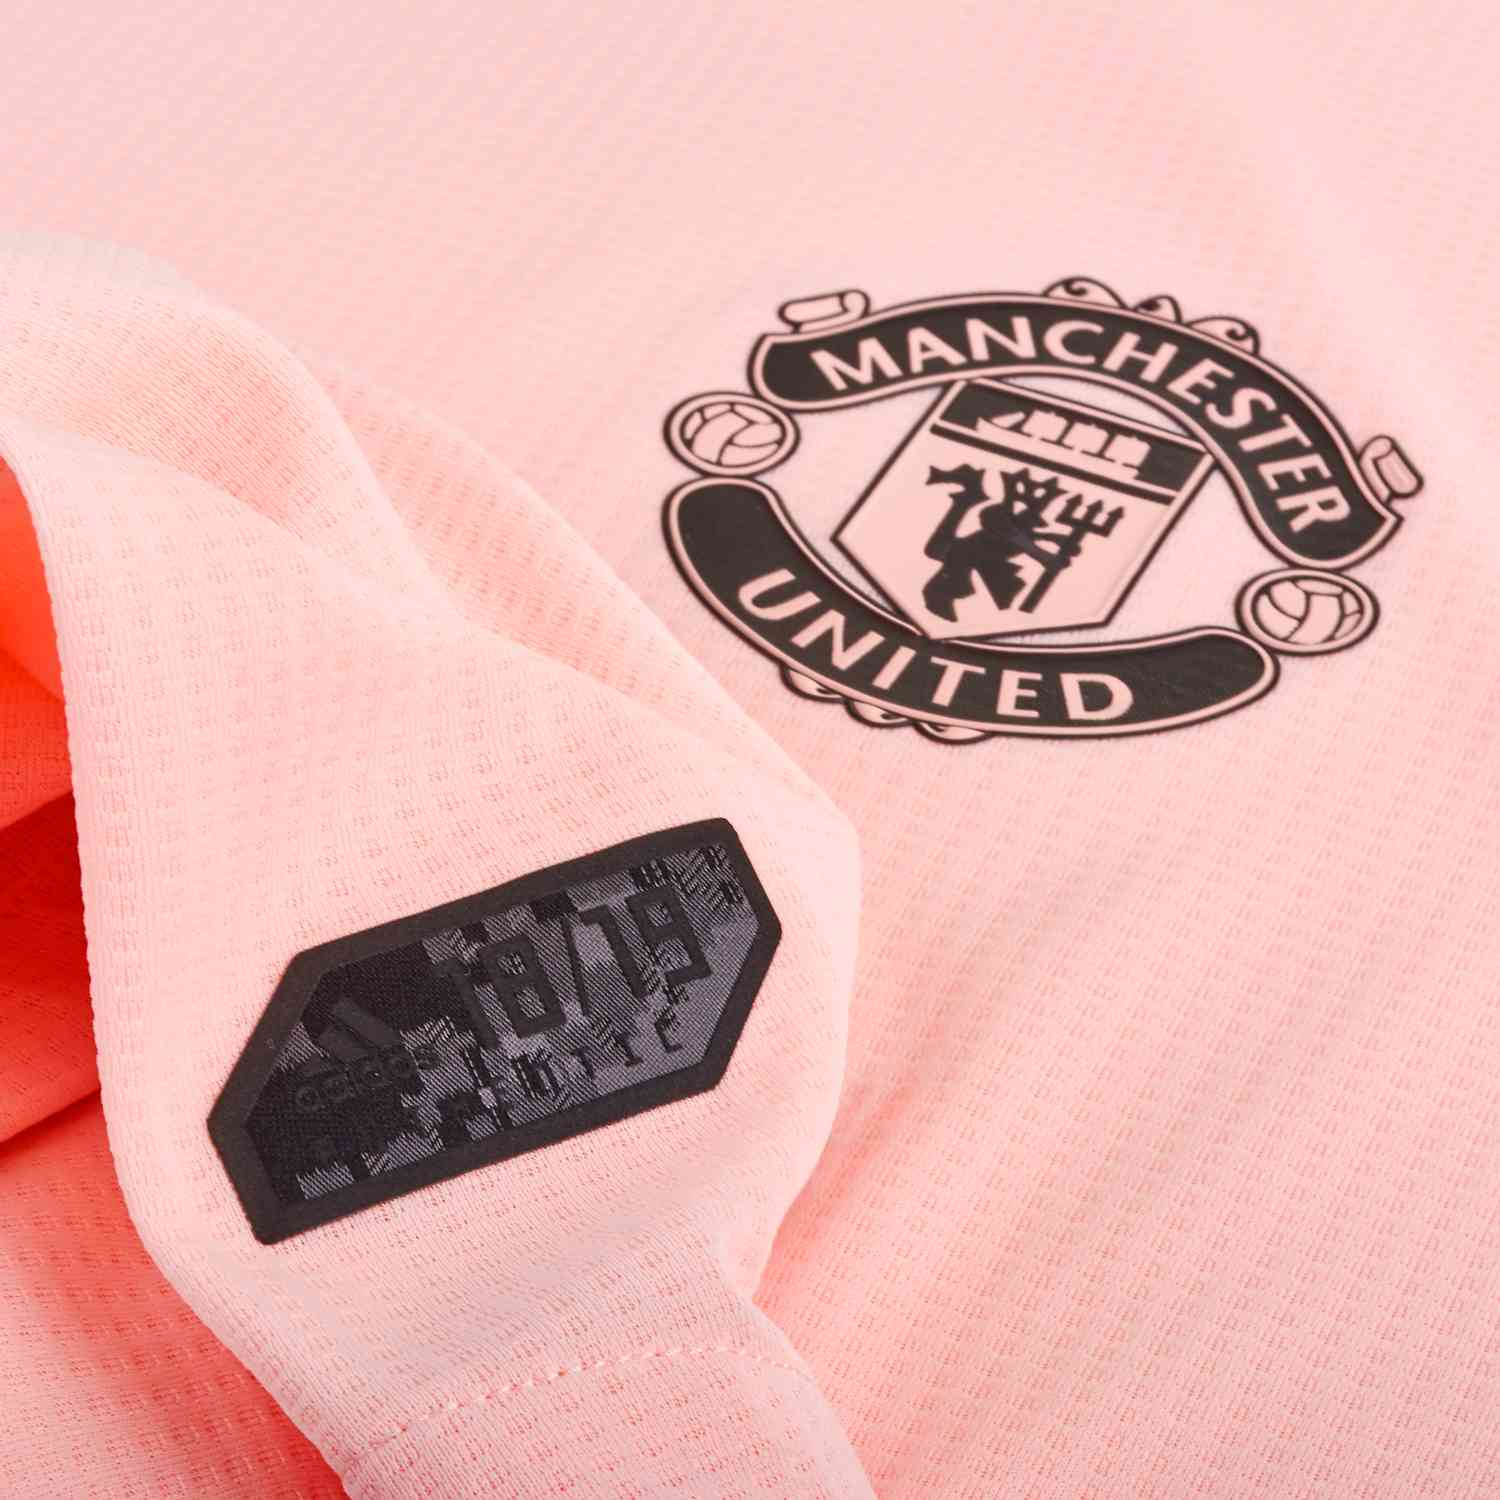 Adidas Manchester United Away Authentic Jersey 2018 19 Soccerpro